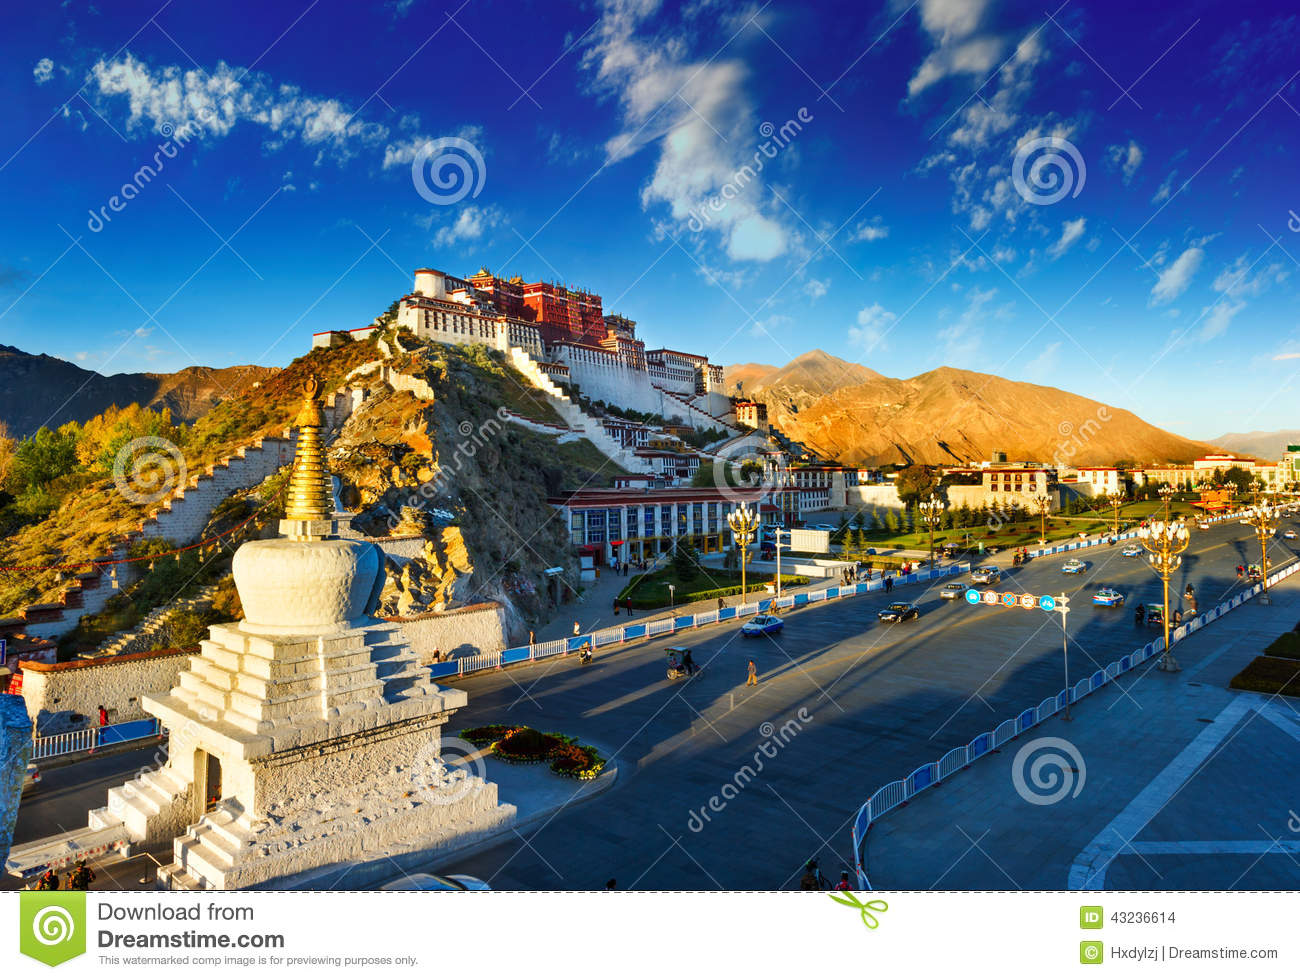 Potala palace,in Tibet of China